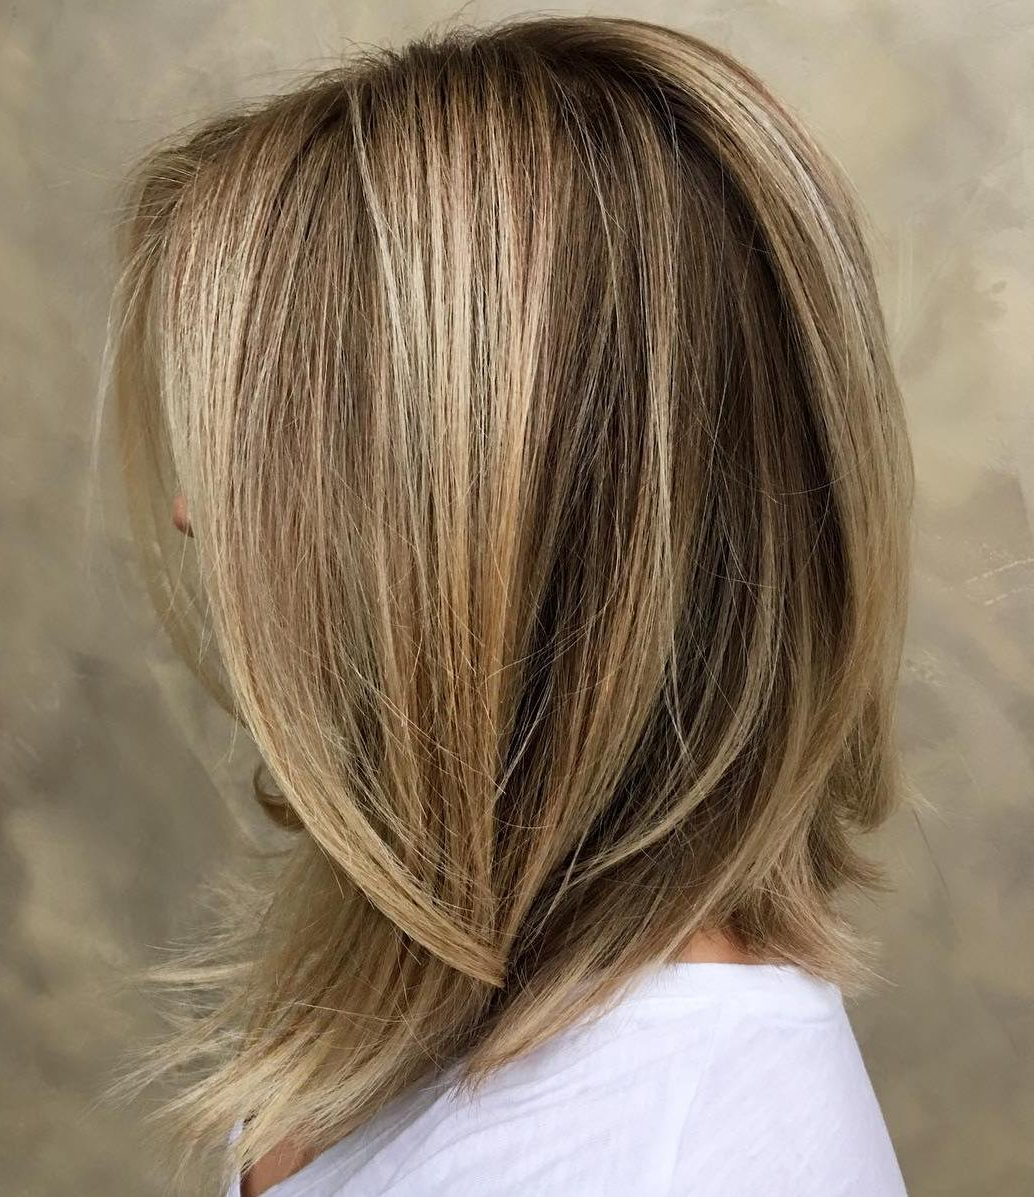 60 Inspiring Long Bob Hairstyles And Long Bob Haircuts For 2019 With Popular Bedhead Layers For Long Hairstyles (View 17 of 20)